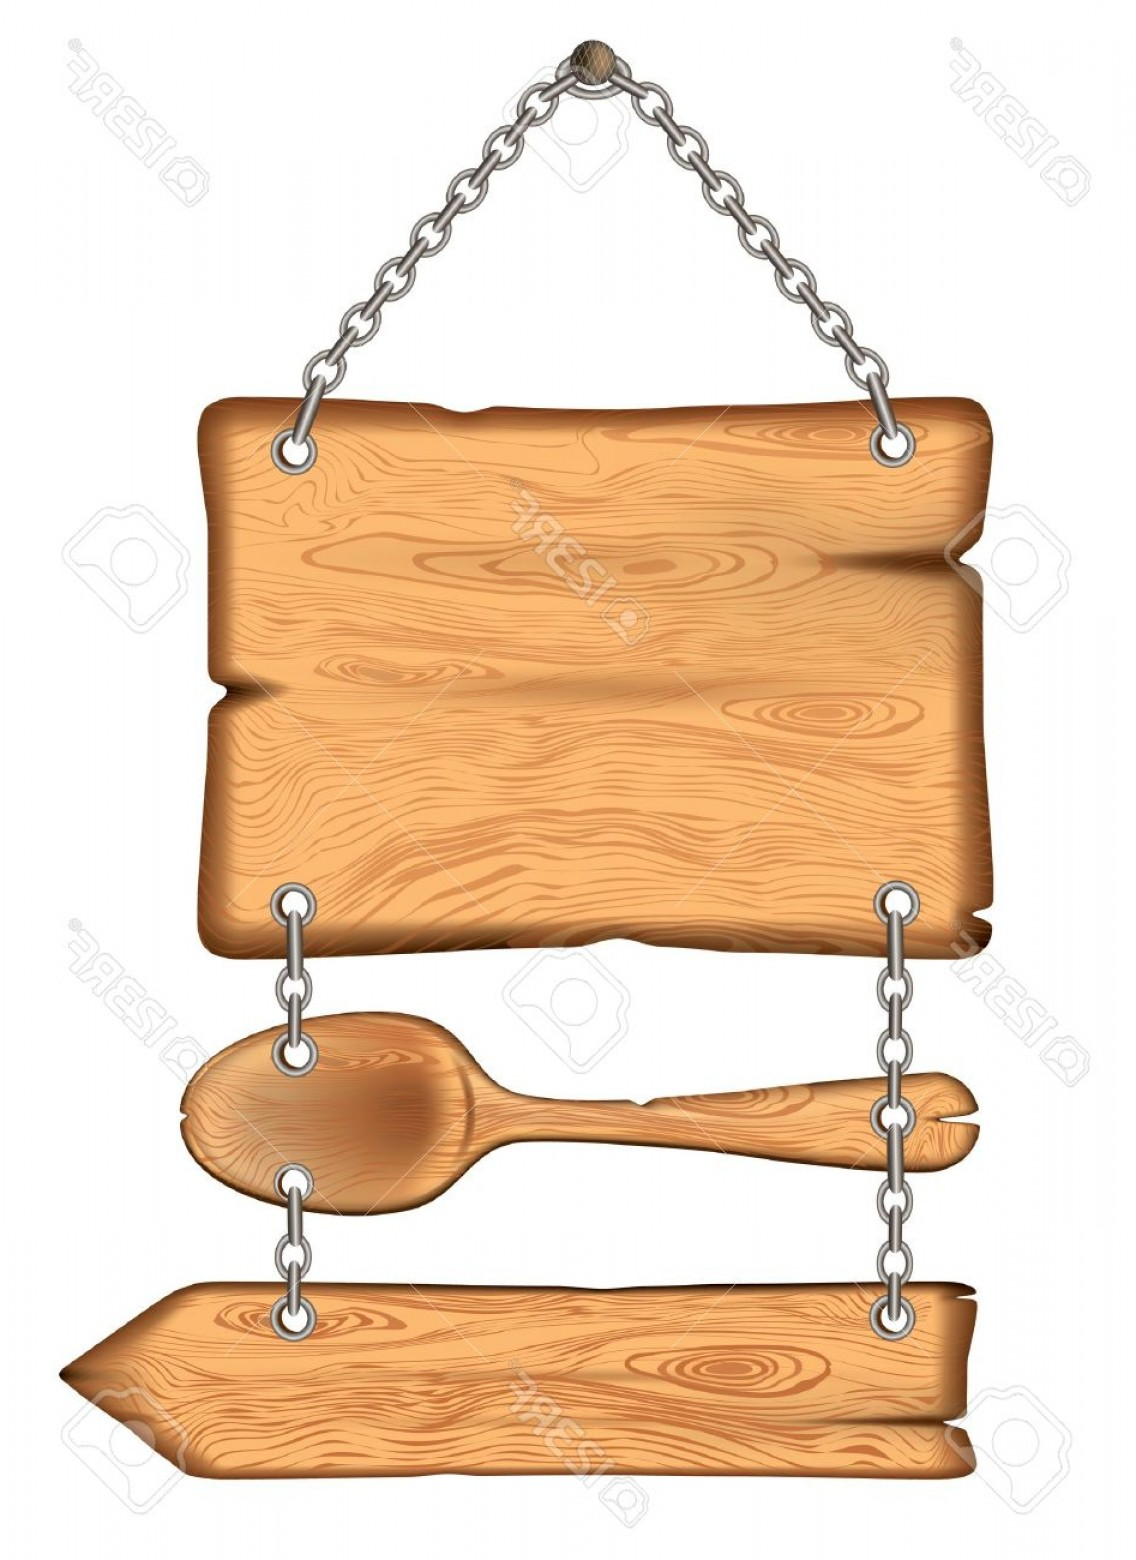 Old Wood Sign Vector: Photothe Old Wooden Sign With A Spoon Weighs On The Chains Vector